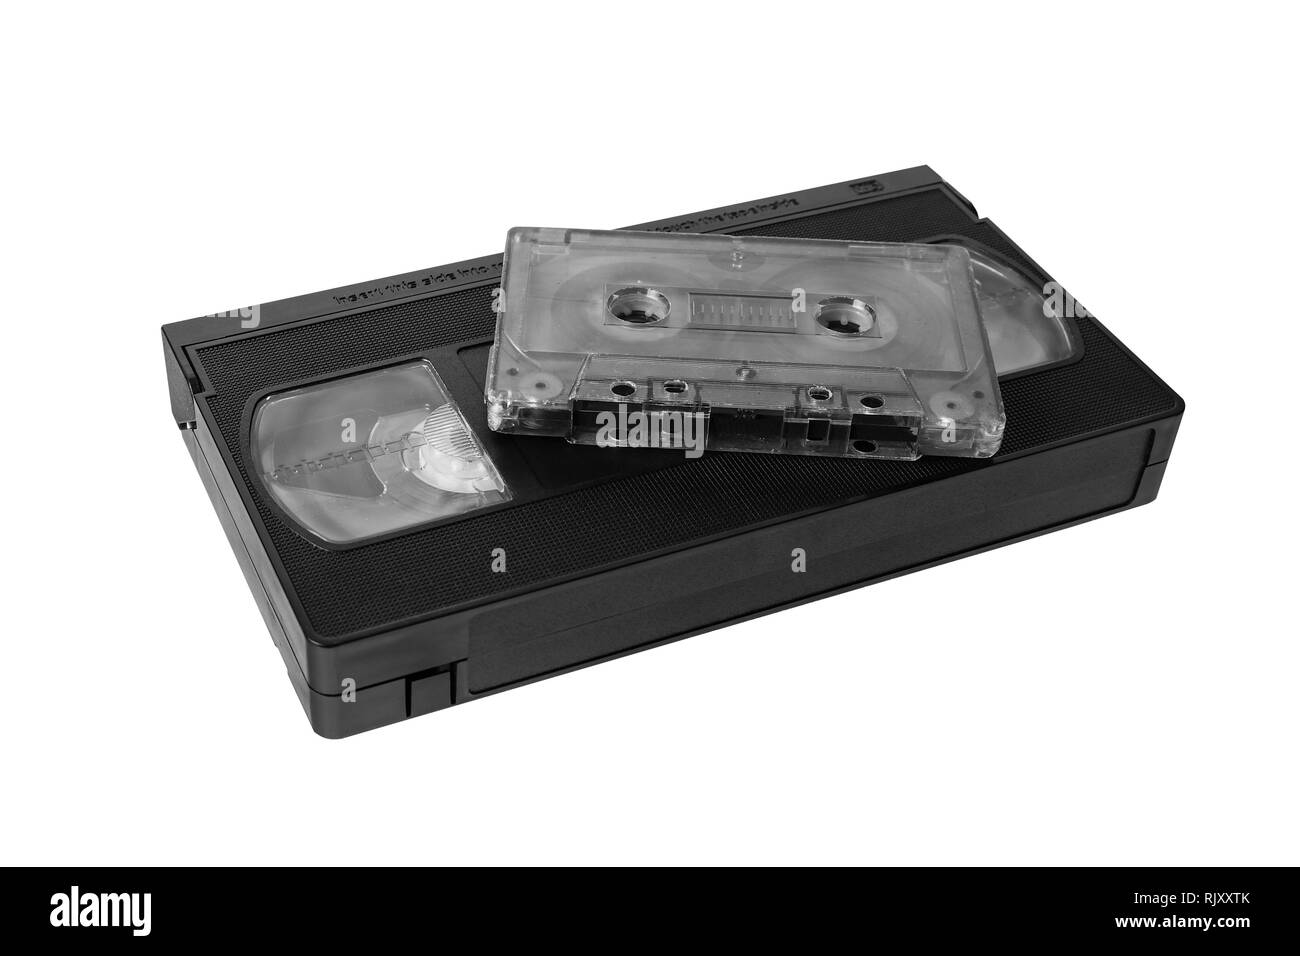 audio tape cassette and VHS video tape cassette on white background, isolated - Stock Image